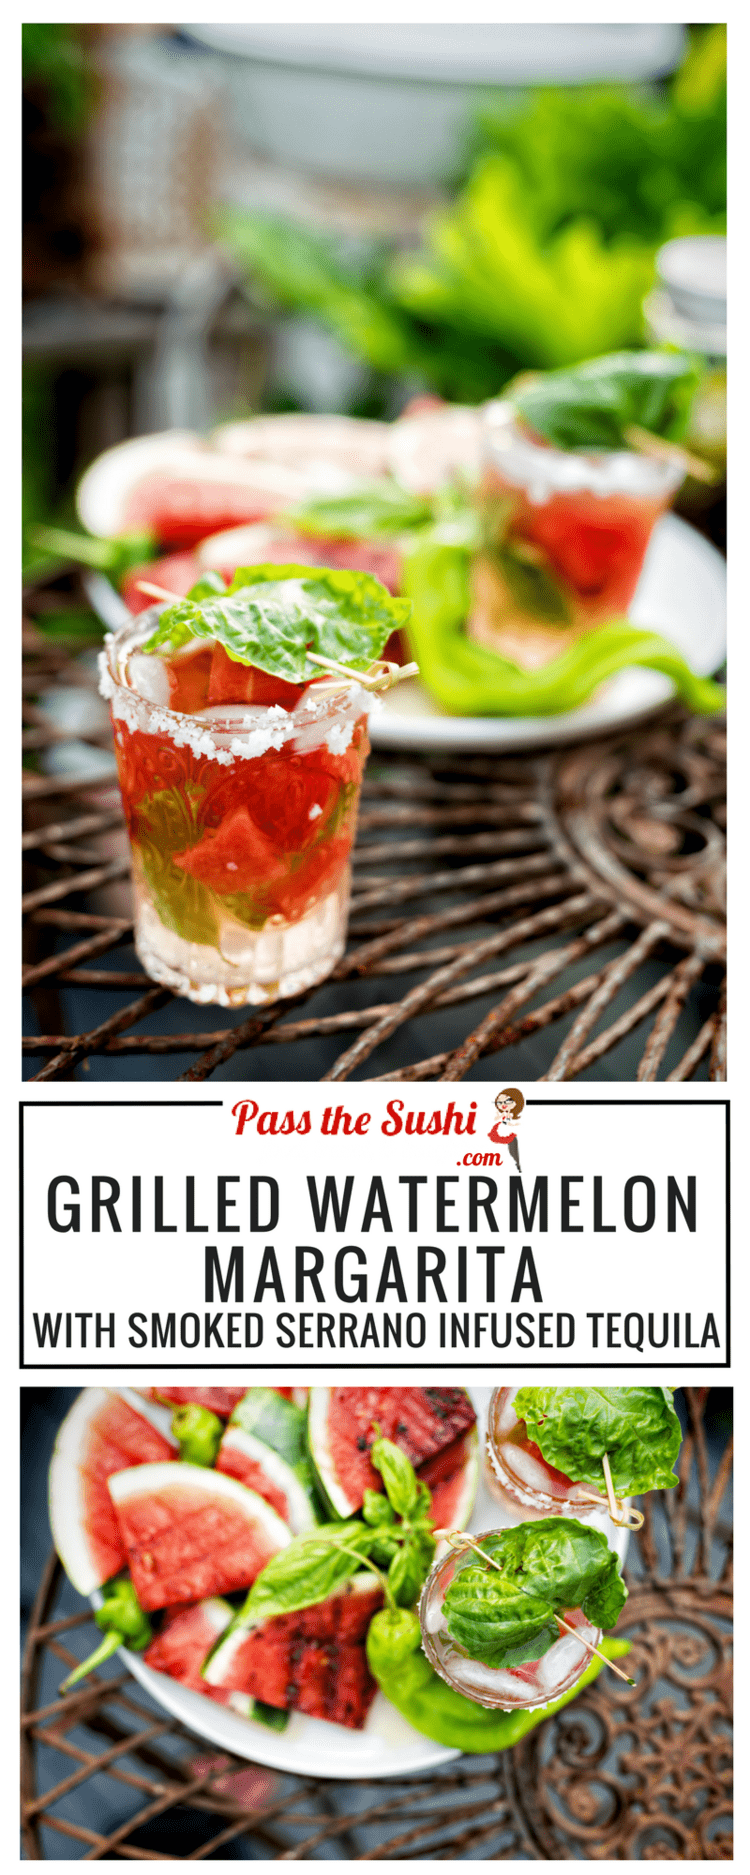 Grilled Watermelon Margarita with Smoked Serrano Infused Tequila Recipe at PasstheSushi.com